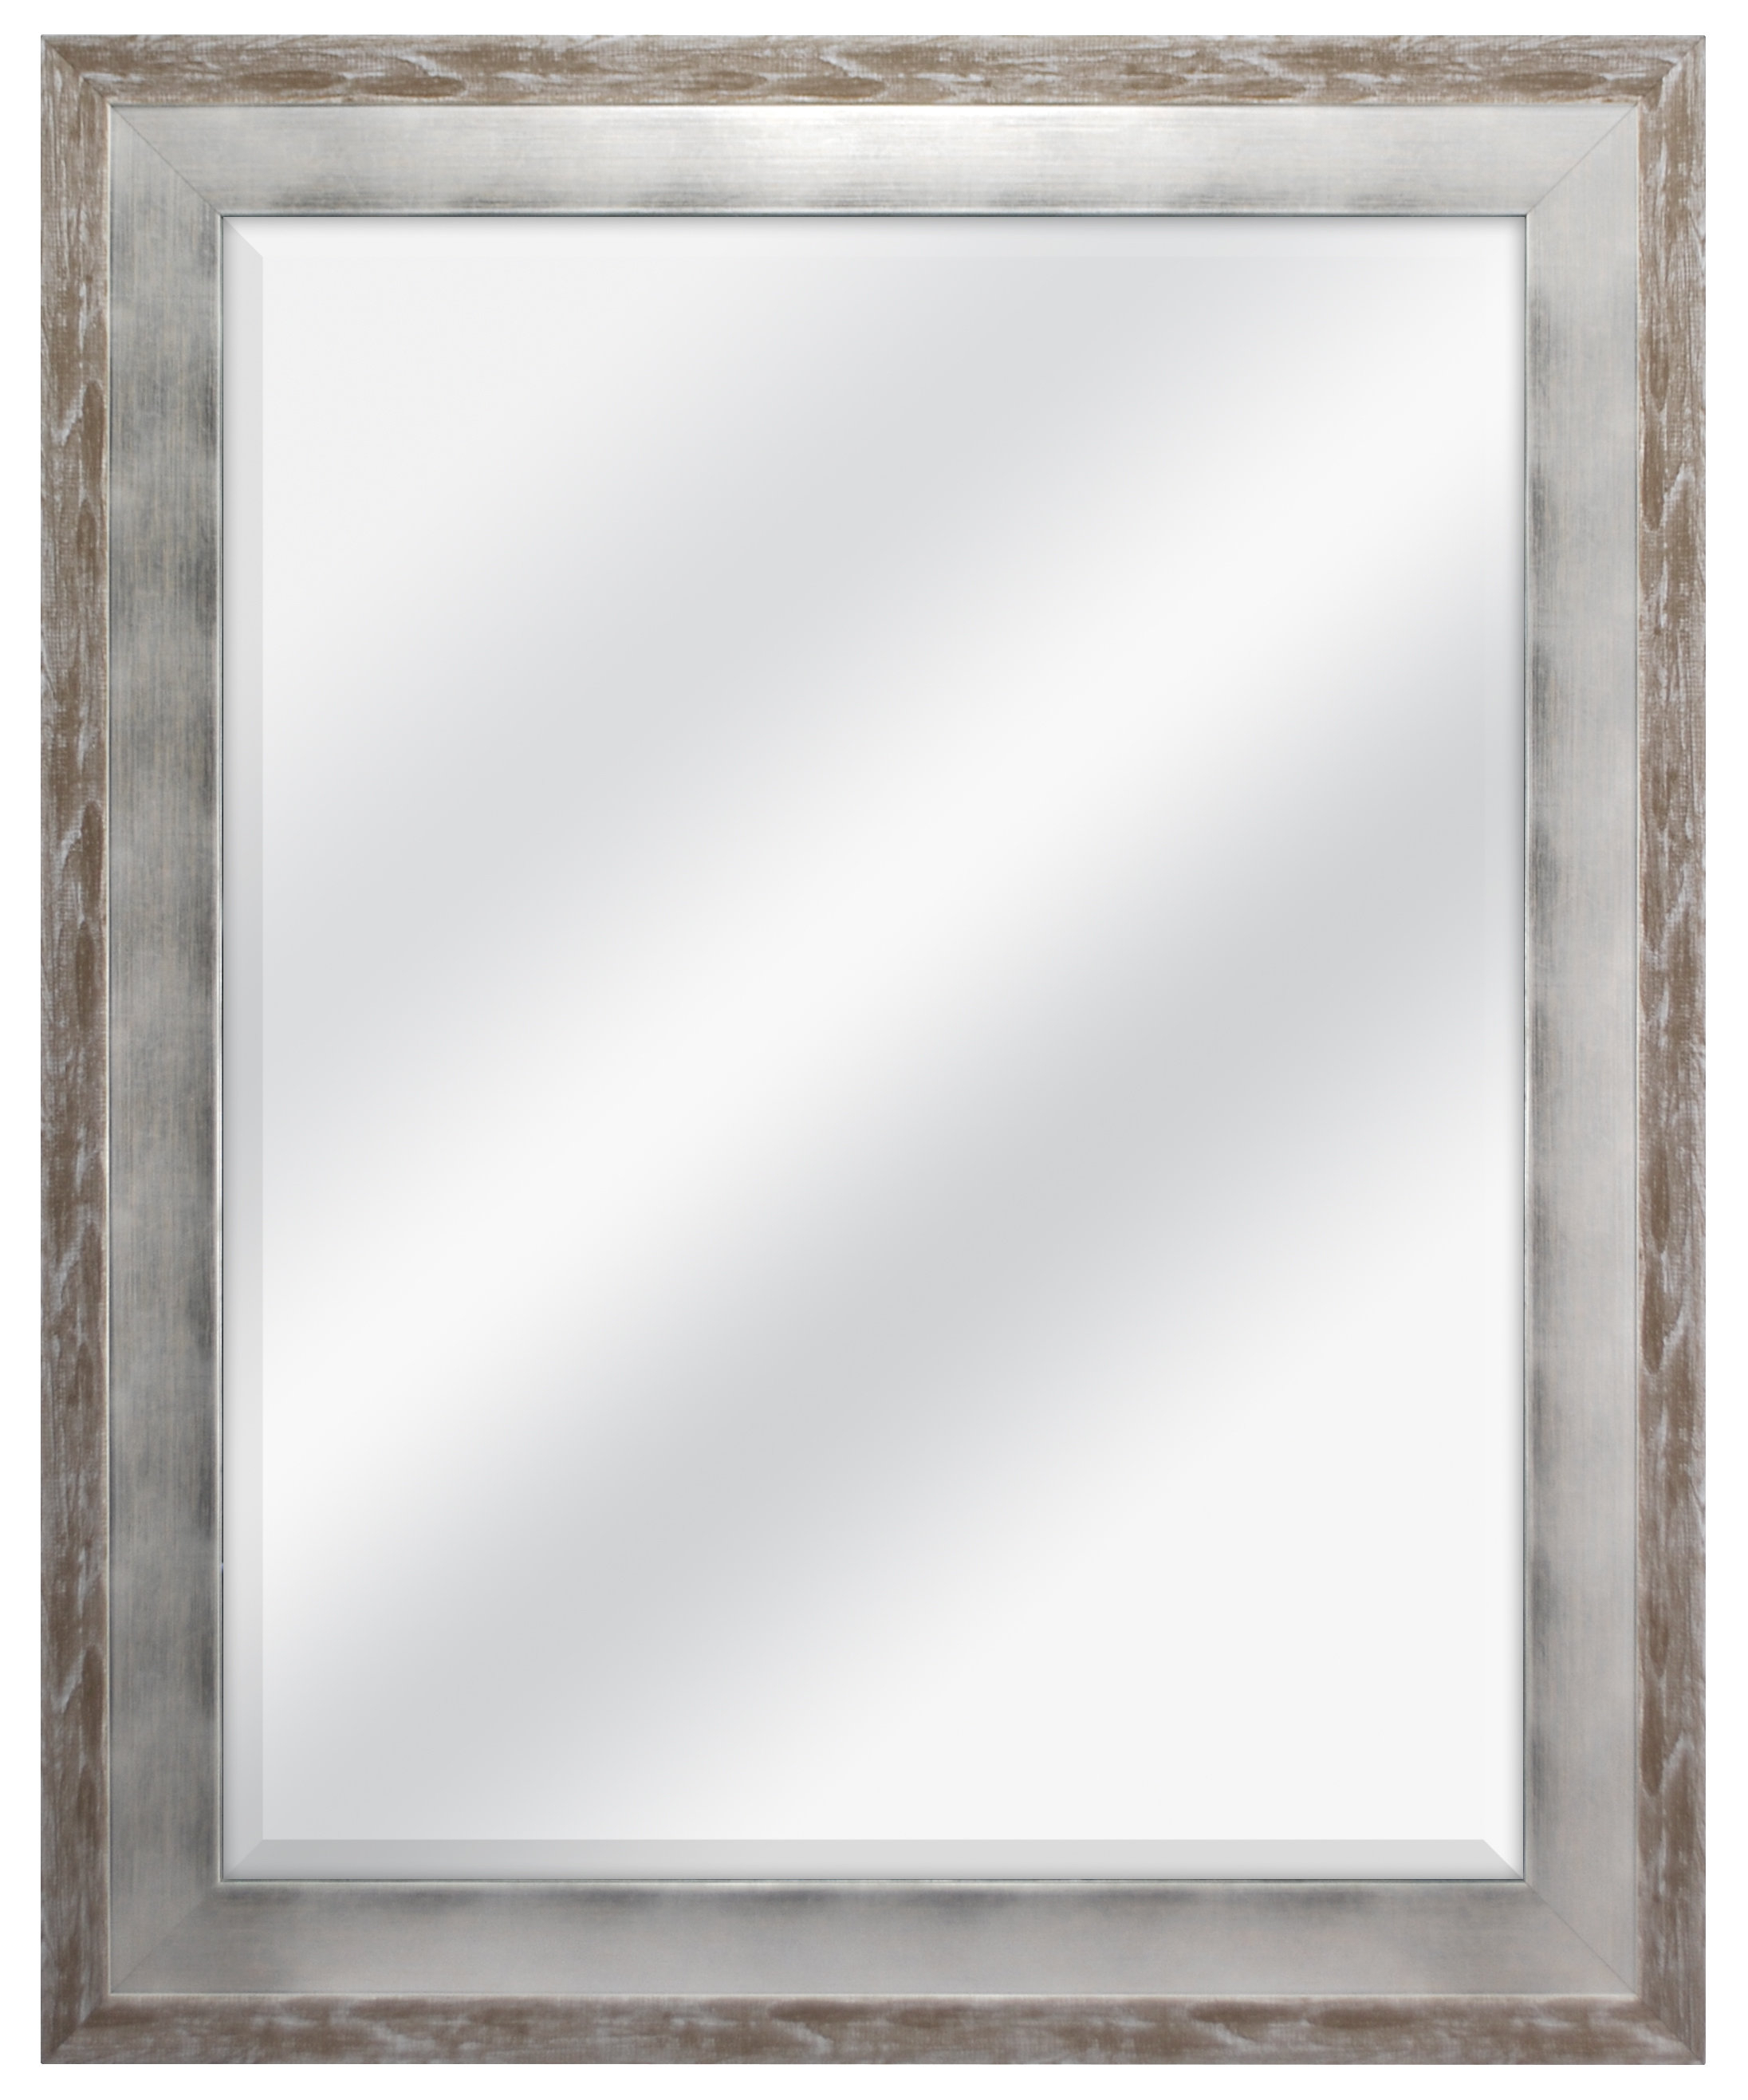 Epinal Shabby Elegance Wall Mirror With Famous Epinal Shabby Elegance Wall Mirrors (Gallery 3 of 20)